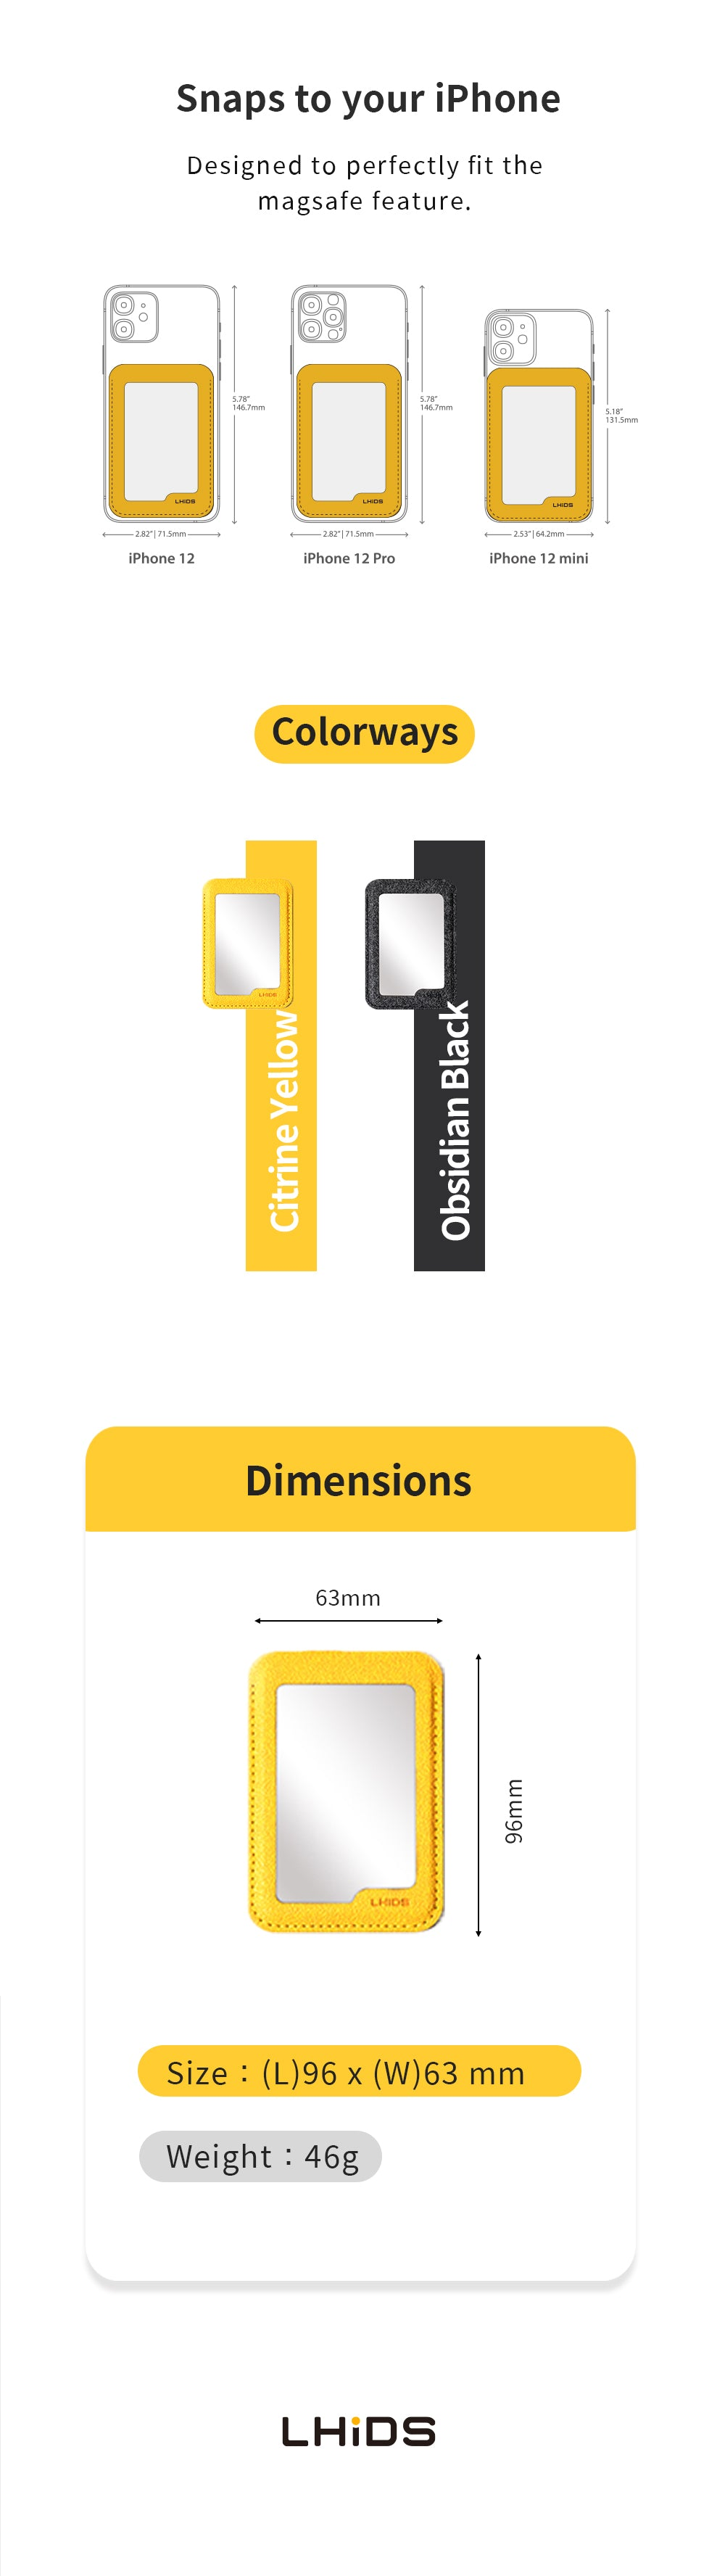 LHiDS MagMirror Phone Wallet colors and dimensions